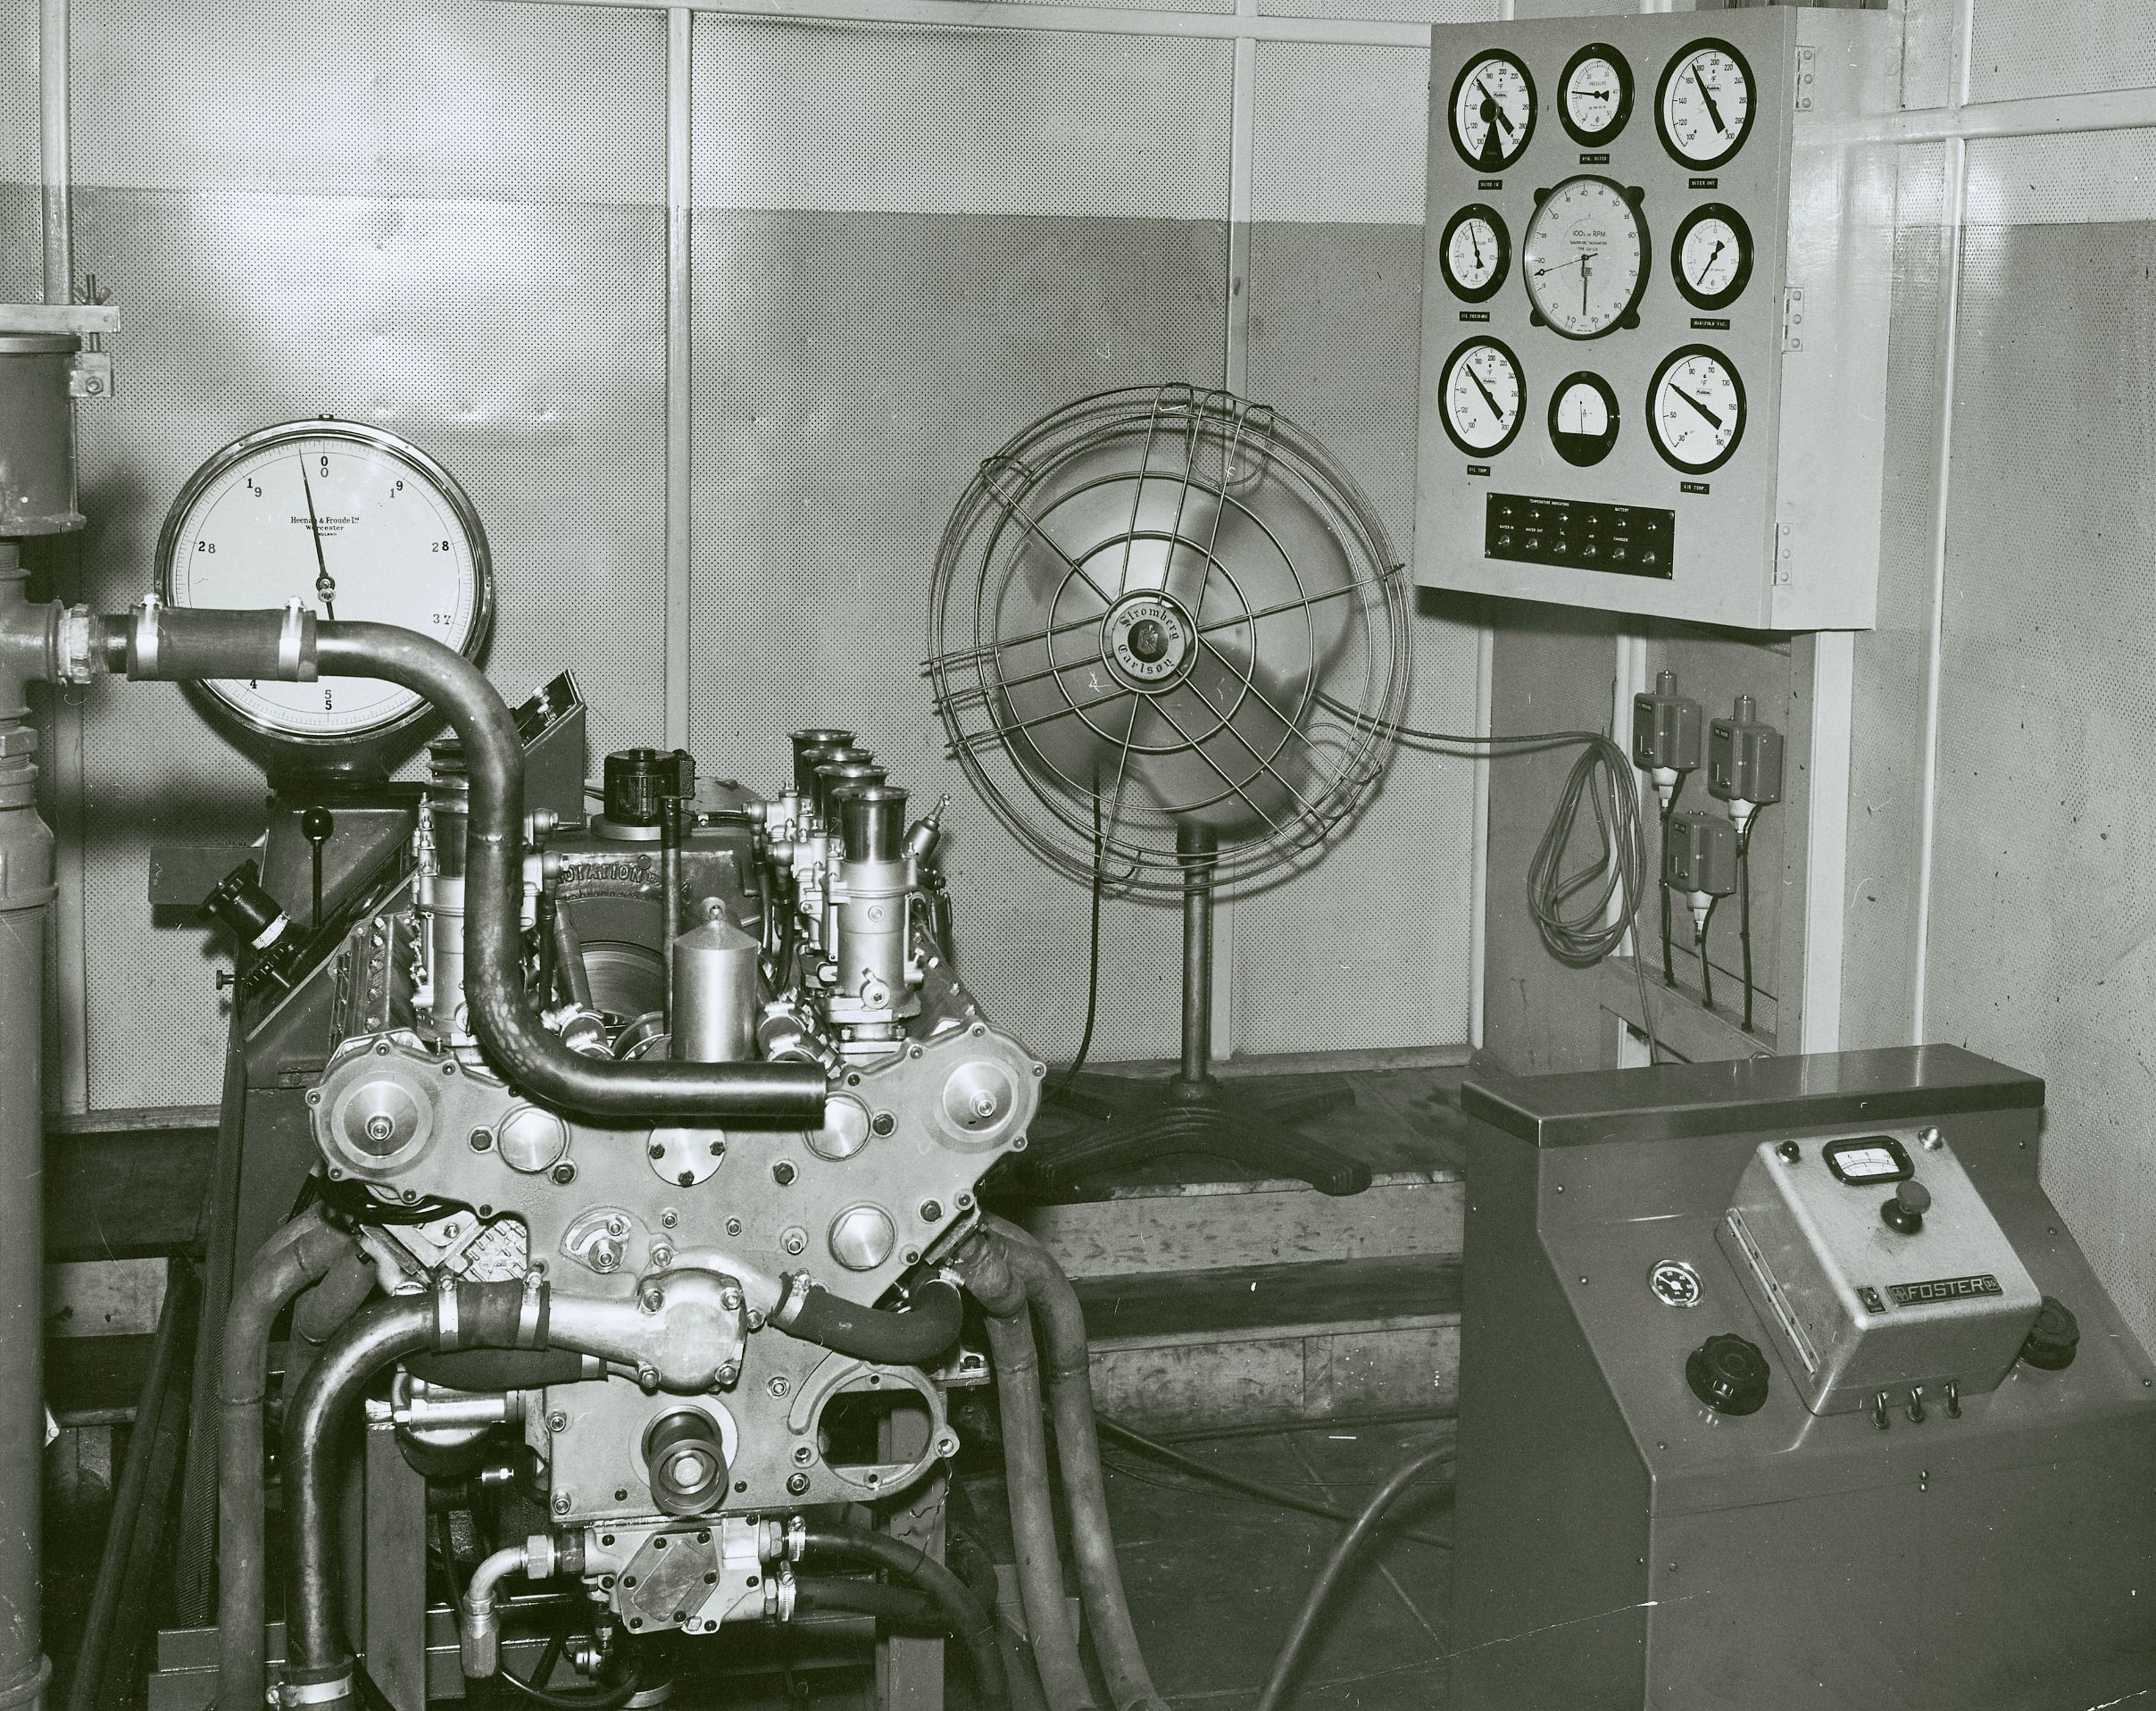 small resolution of the very first repco rb620 v8 in the richmond test cell in 1965 weber carbs on this engine only repco